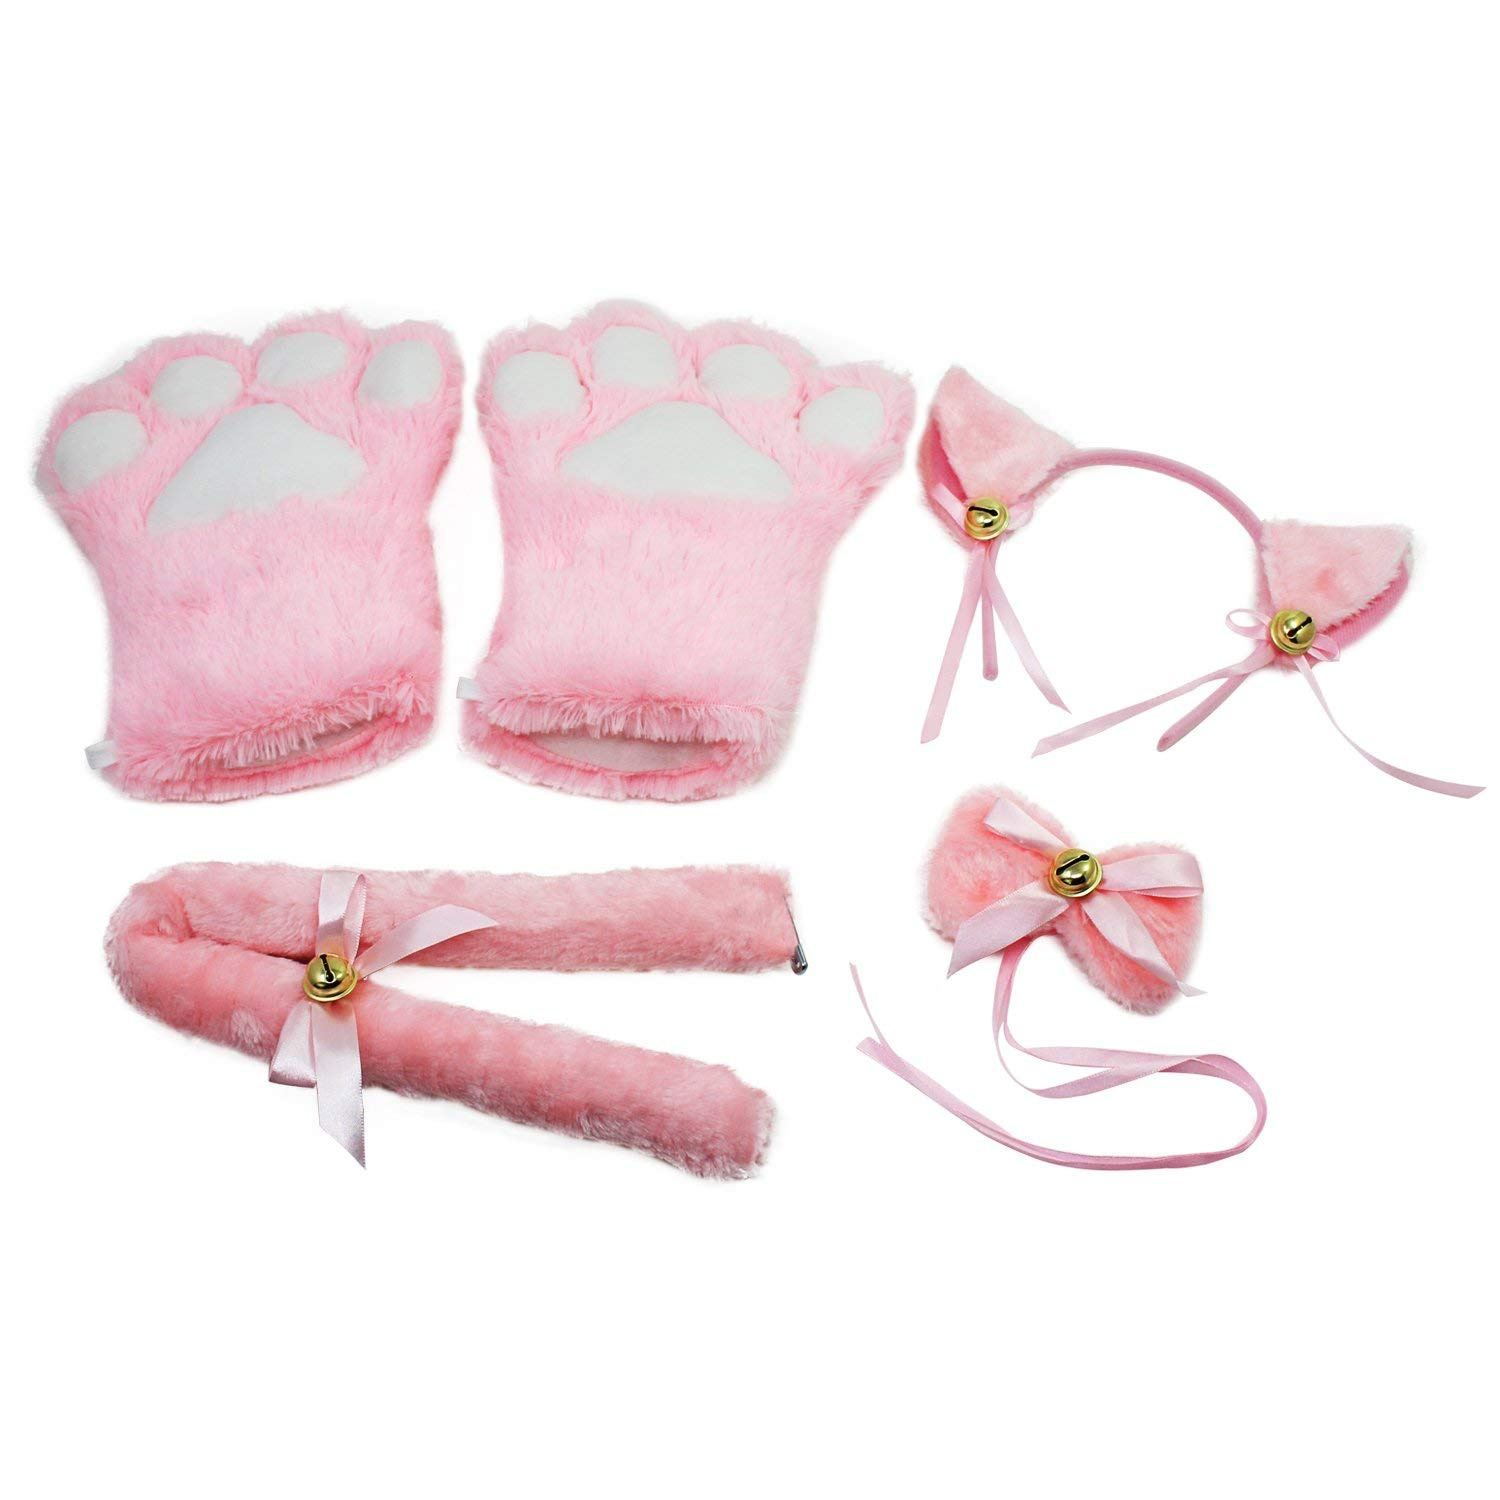 Black KEESIN Cat Cosplay Set Plush Claw Gloves Cat Kitten Ears Tail Collar Paws Cute Adorable Party Costume Set for Women Girl